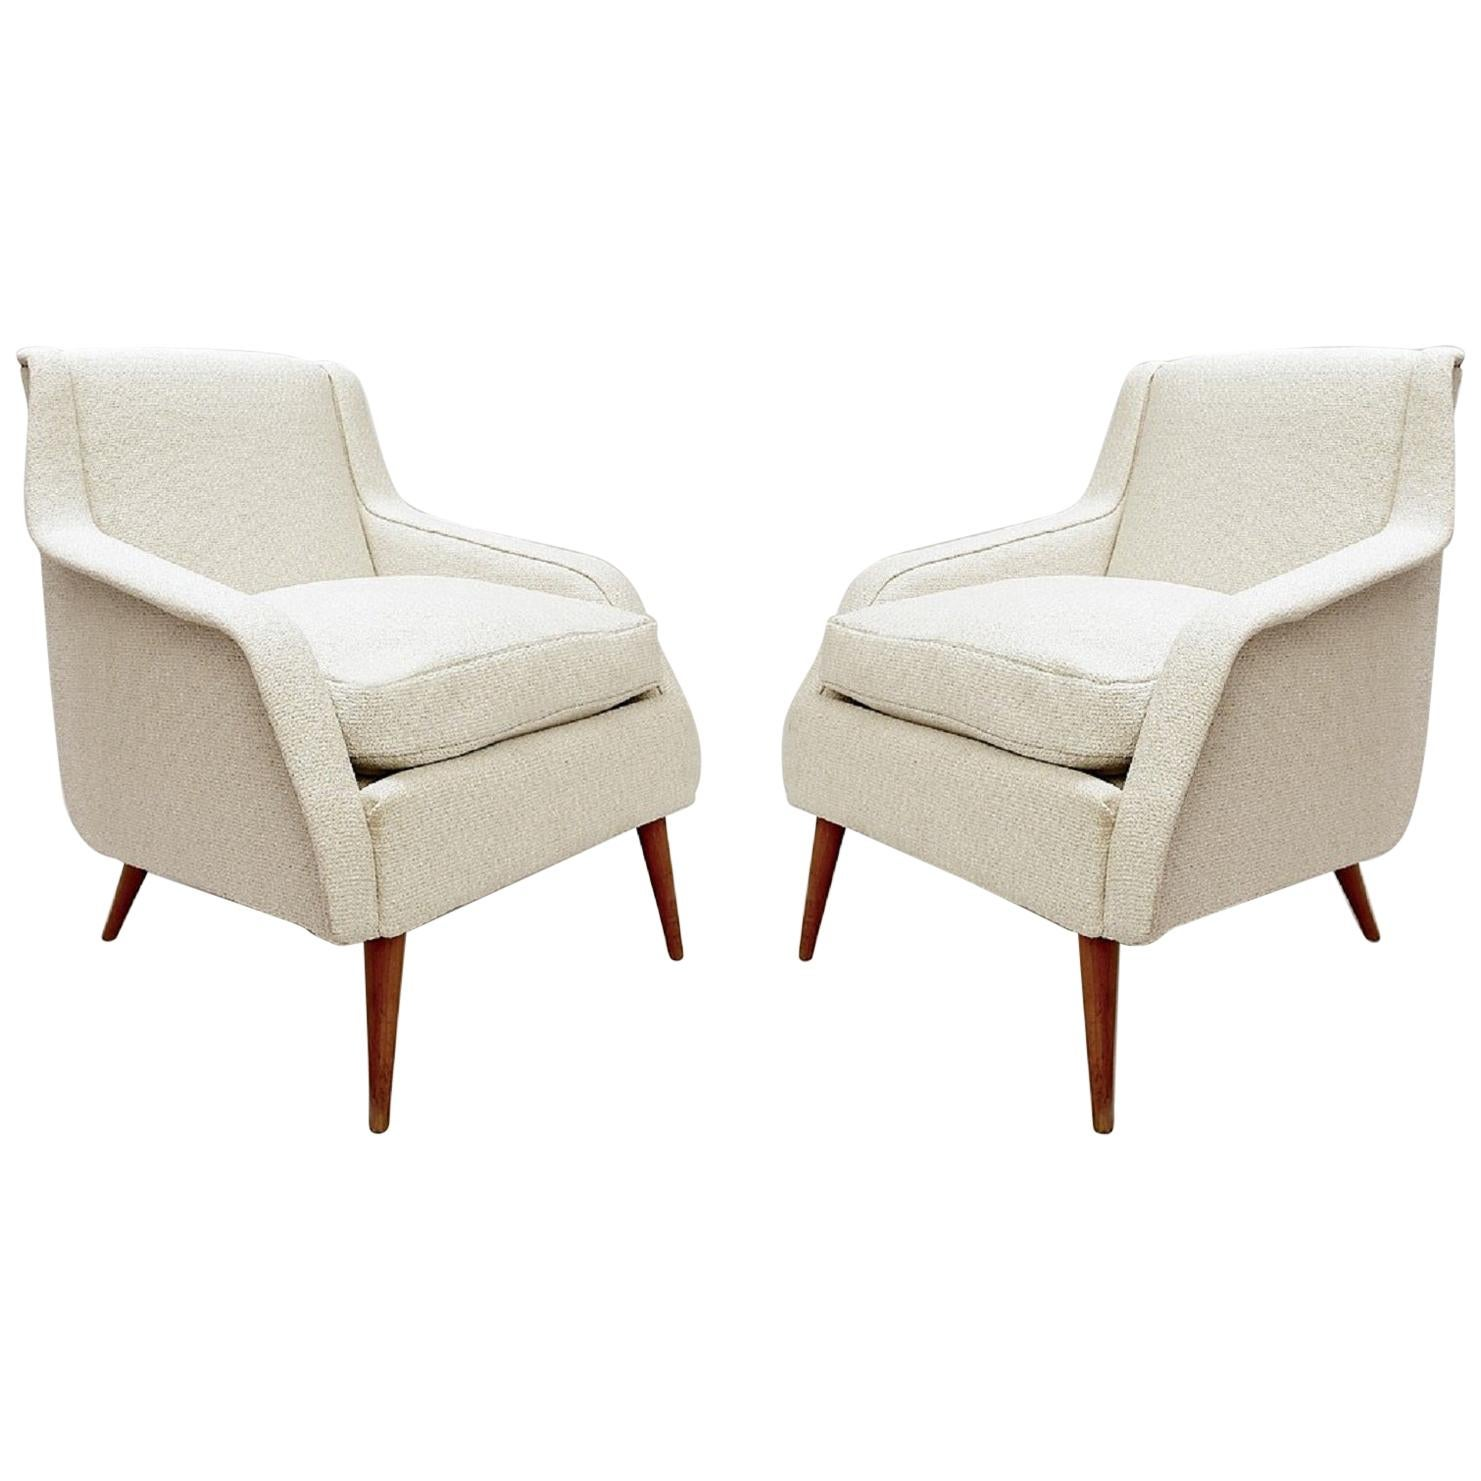 Mid-Century Modern 802 Armchairs by Carlo de Carli for Cassina, 1950s